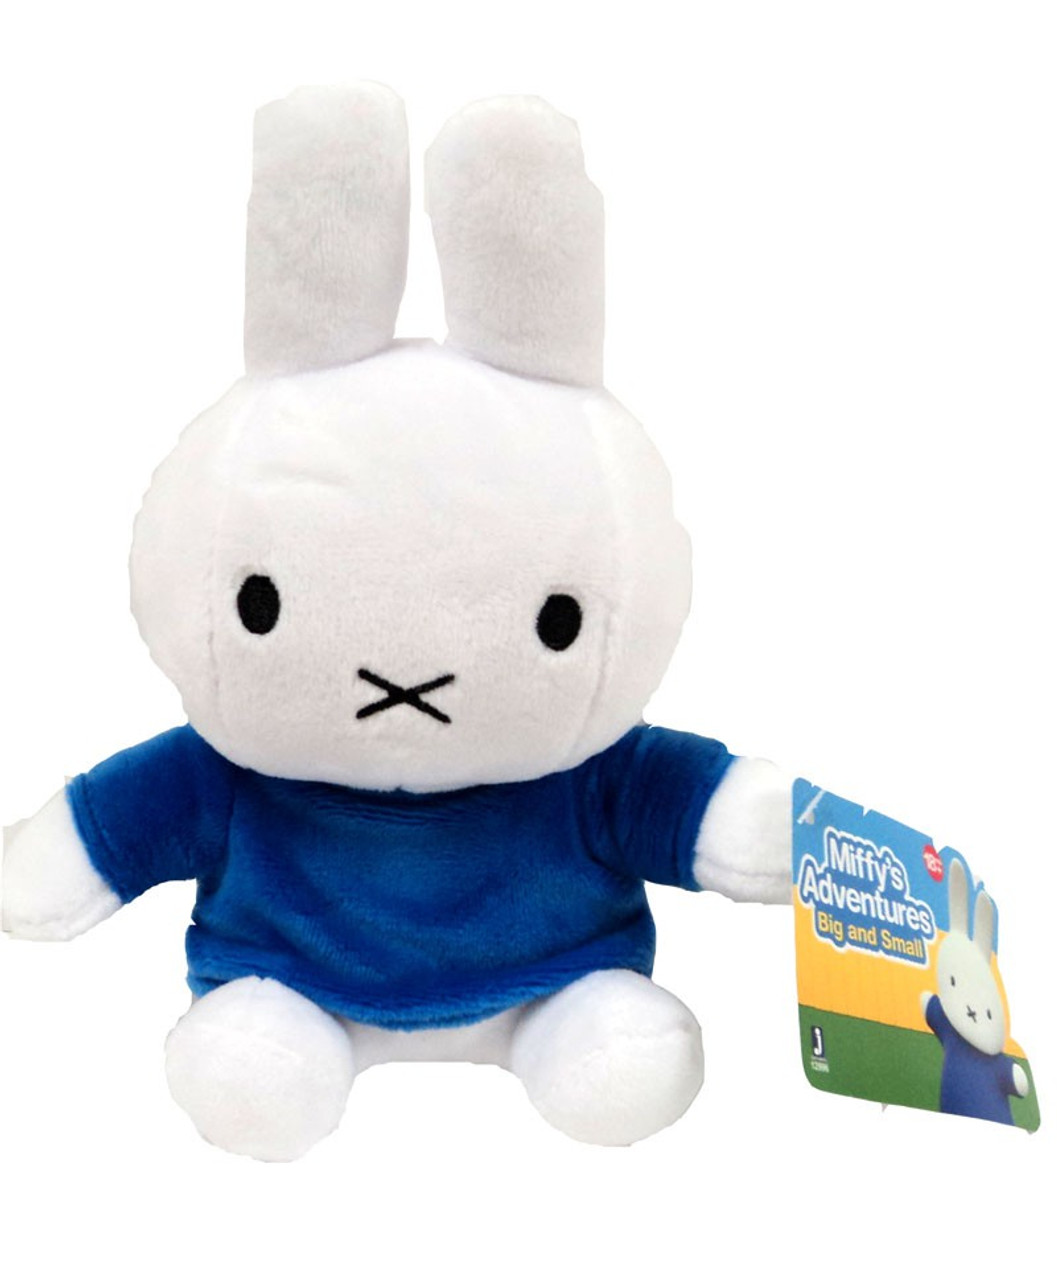 MIFFY/'S ADVENTURES Big and Small GRUNTY/'S WAGON by Jazwares 12953